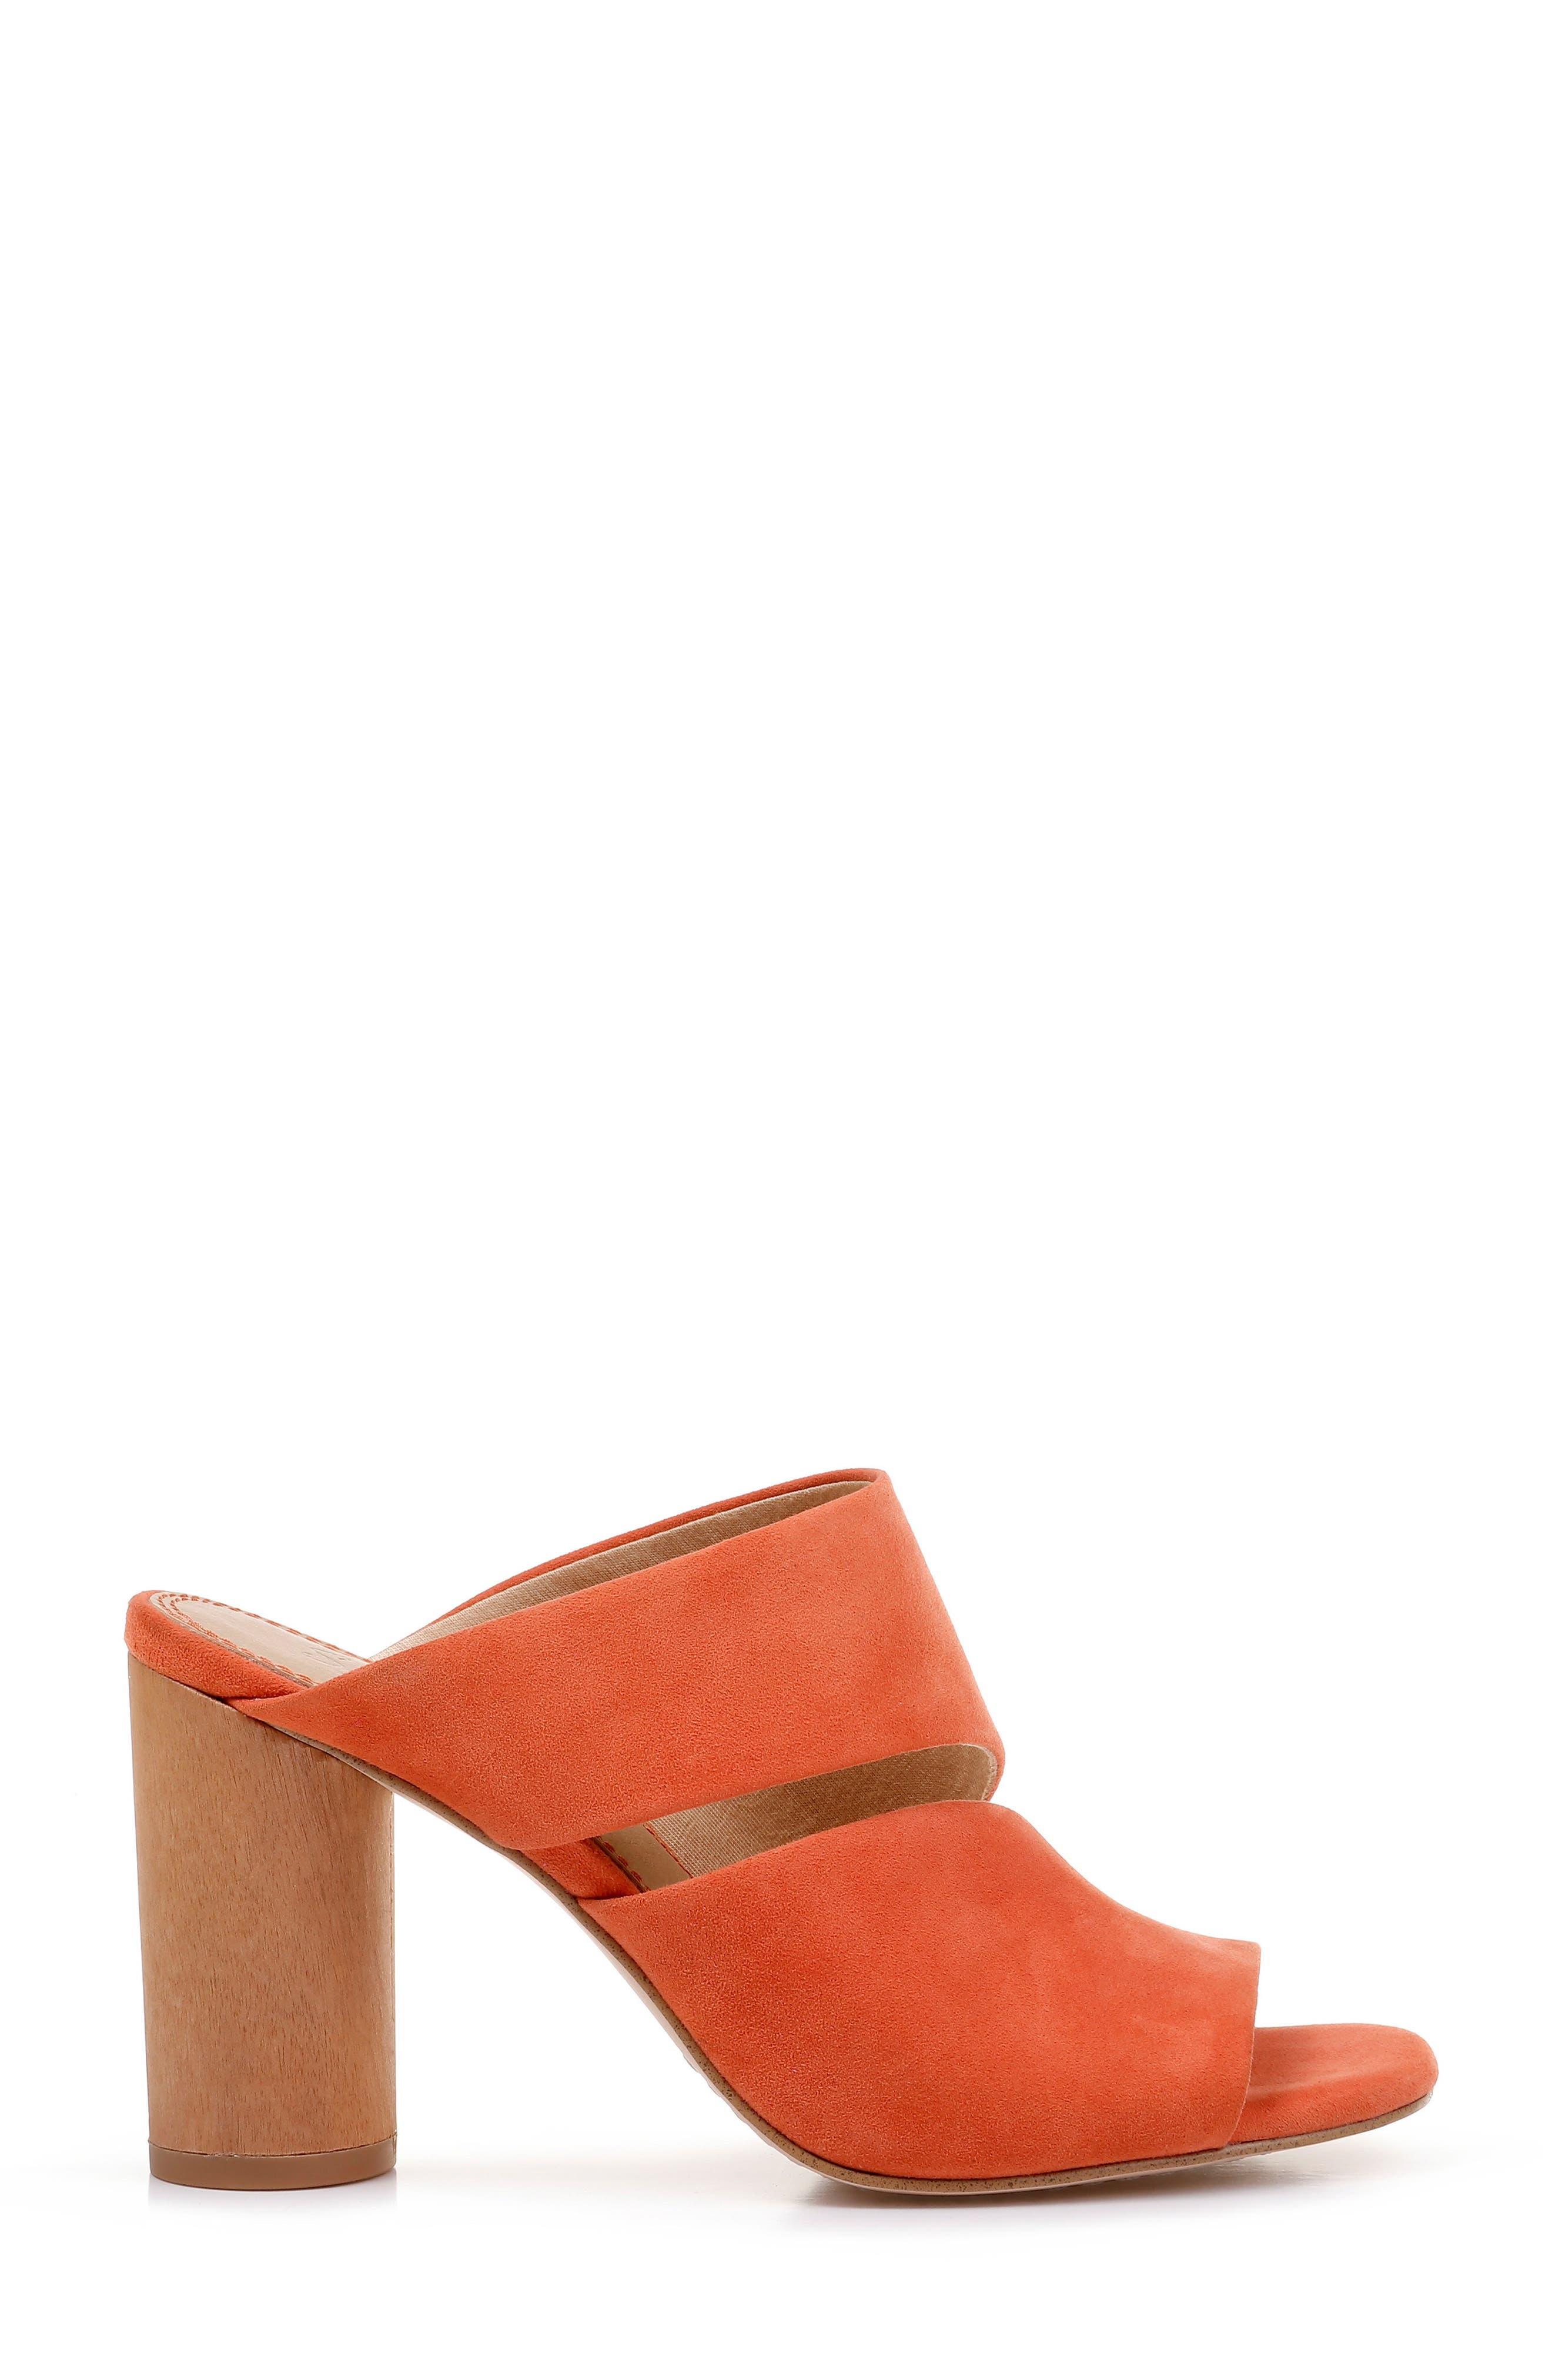 Serenade Sandal,                             Alternate thumbnail 3, color,                             ORANGE SUEDE